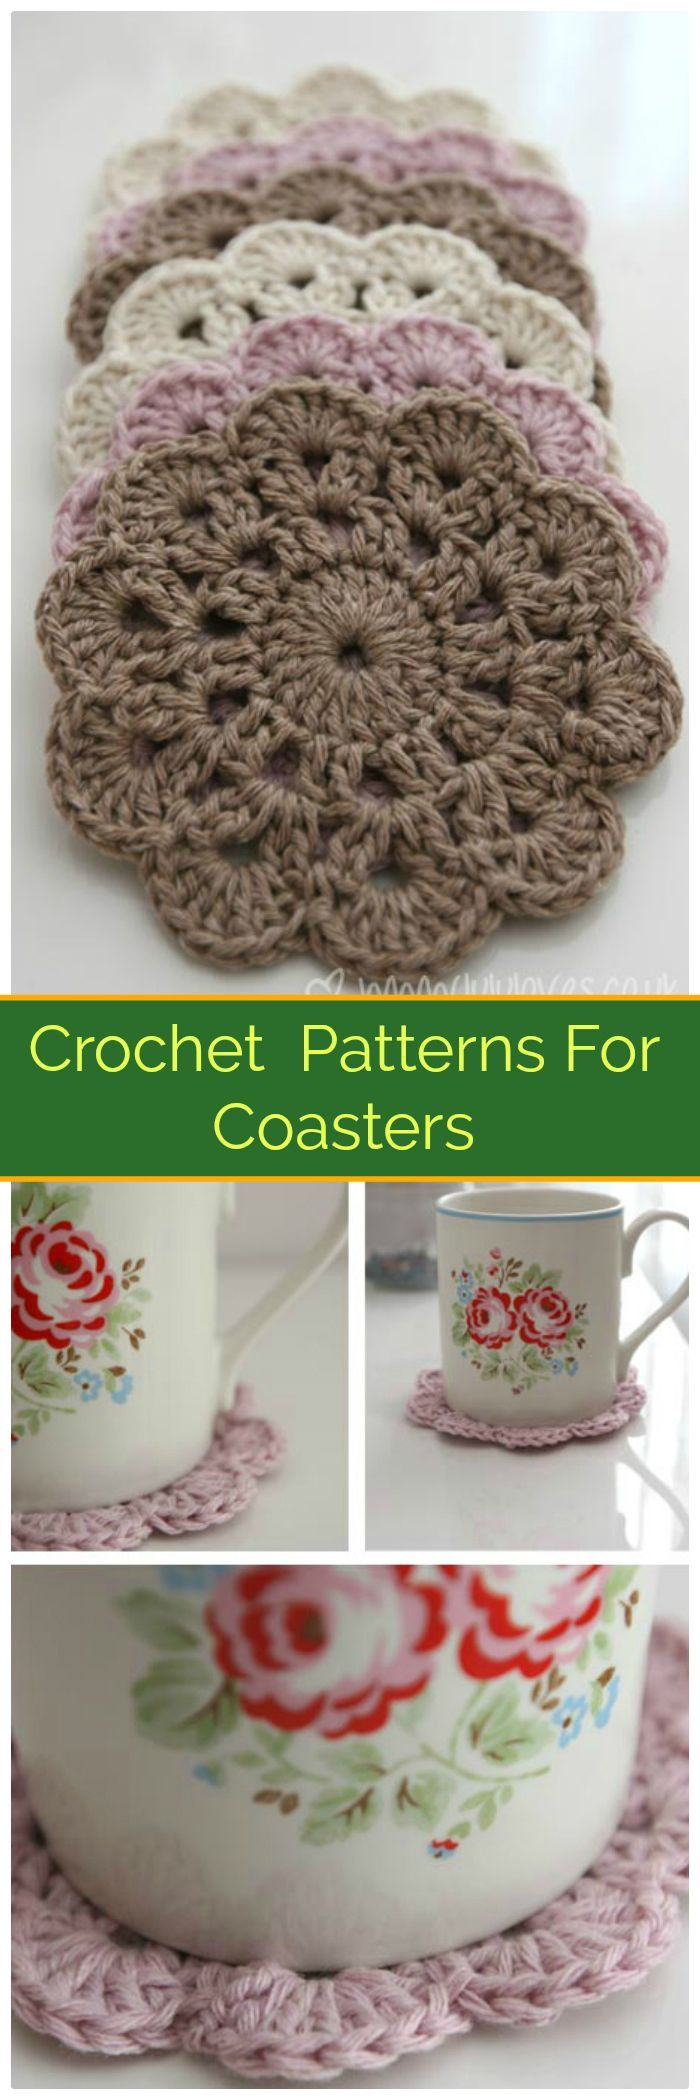 70 Easy Free Crochet Coaster Patterns for Beginners - Page 6 of 14 ...